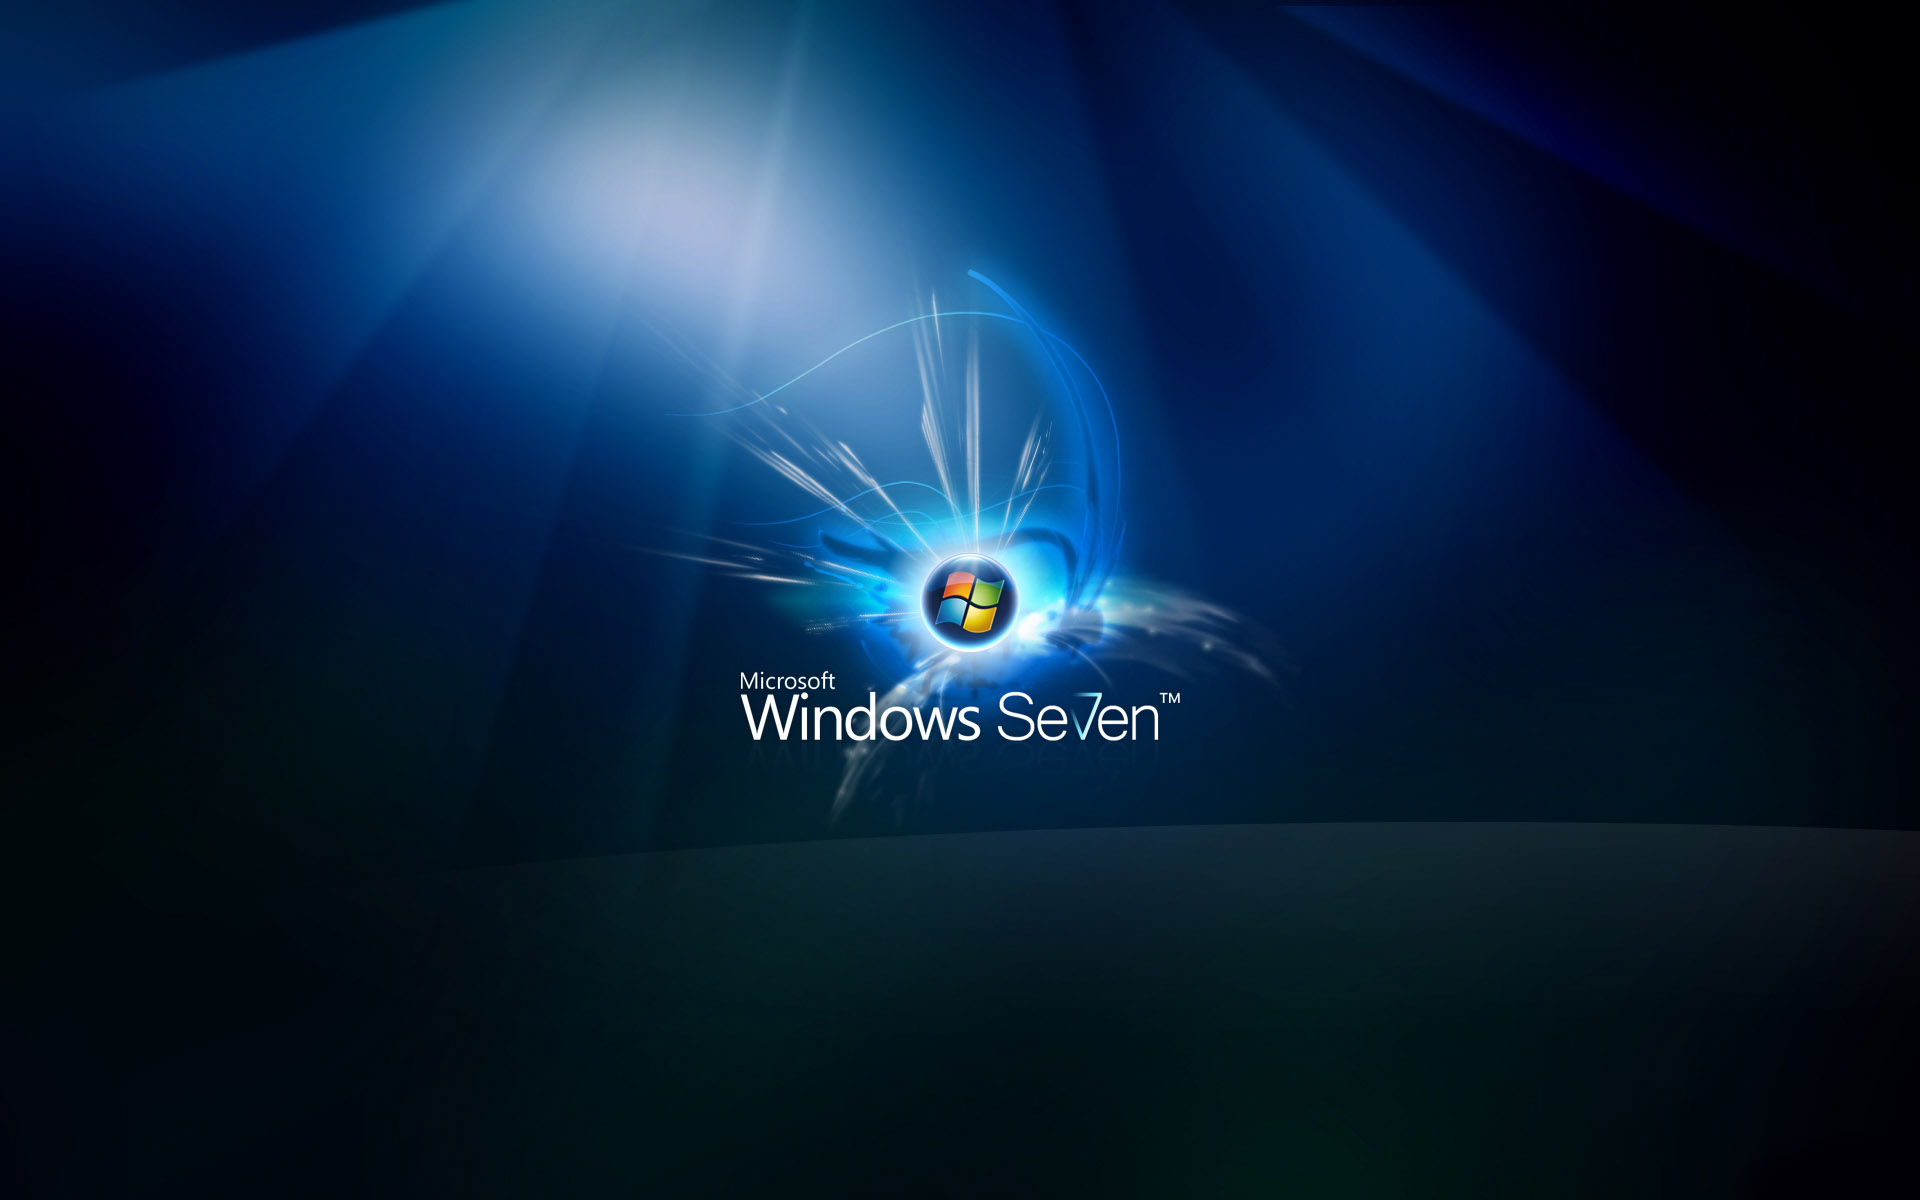 Windows Desktop Wallpaper 9617